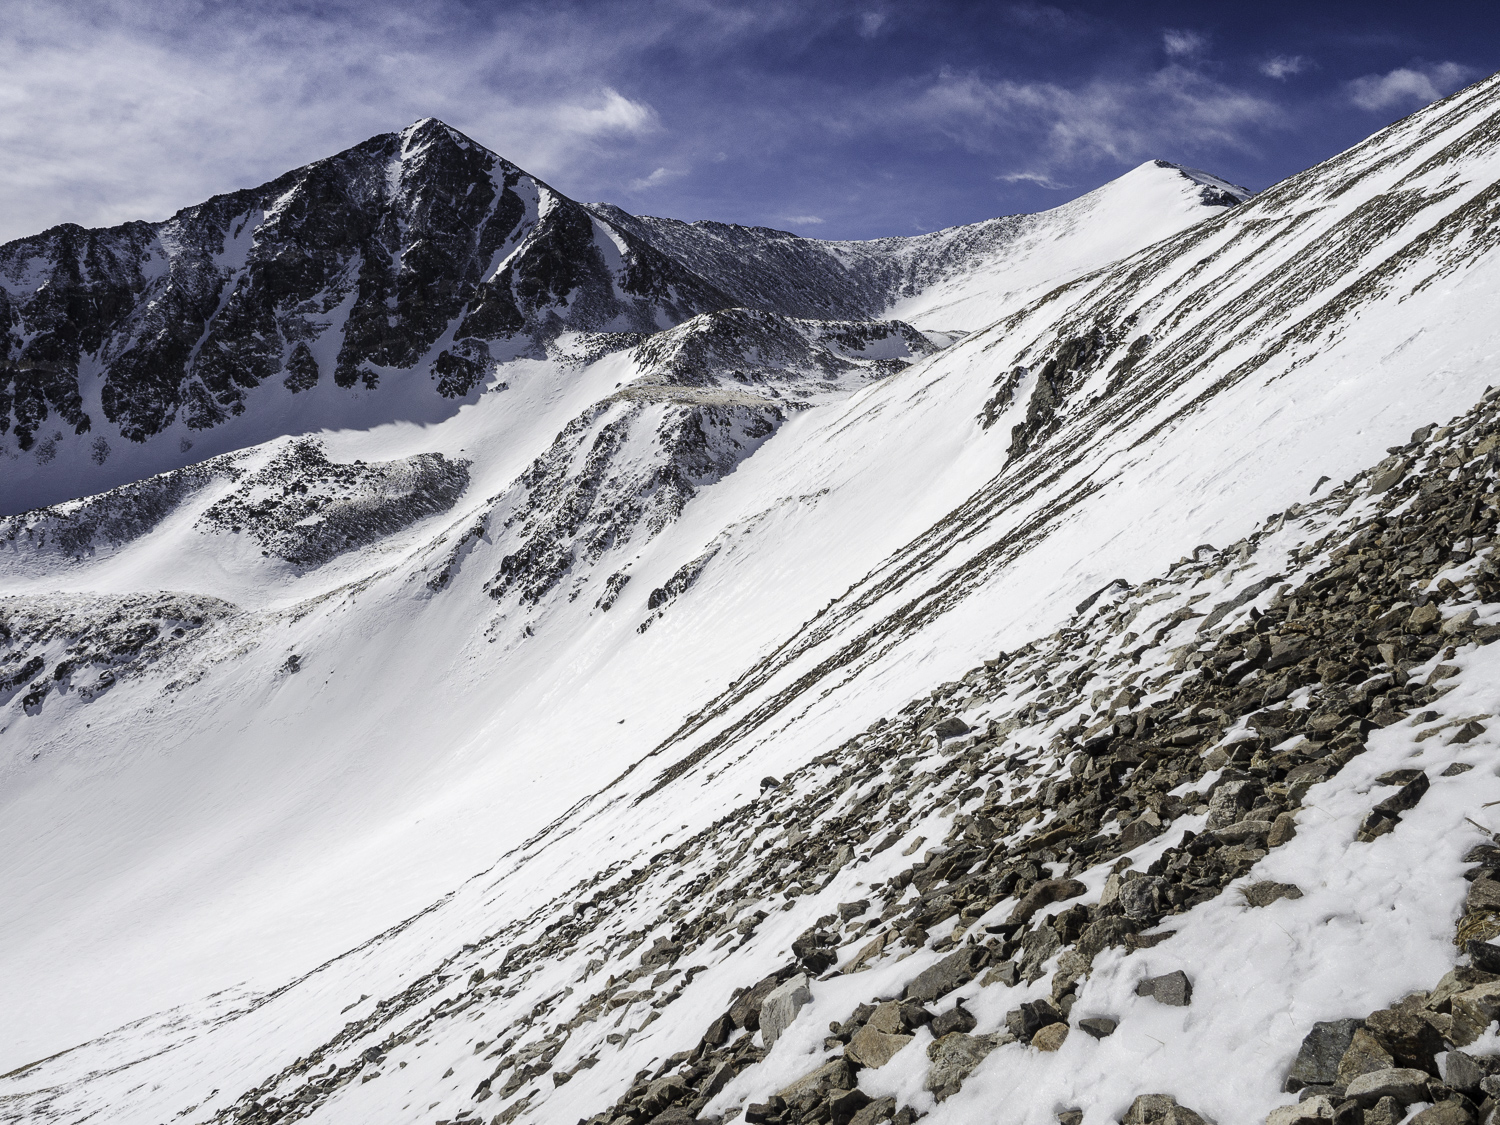 Traversing Peak 10's South Face for Better Skinning Conditions